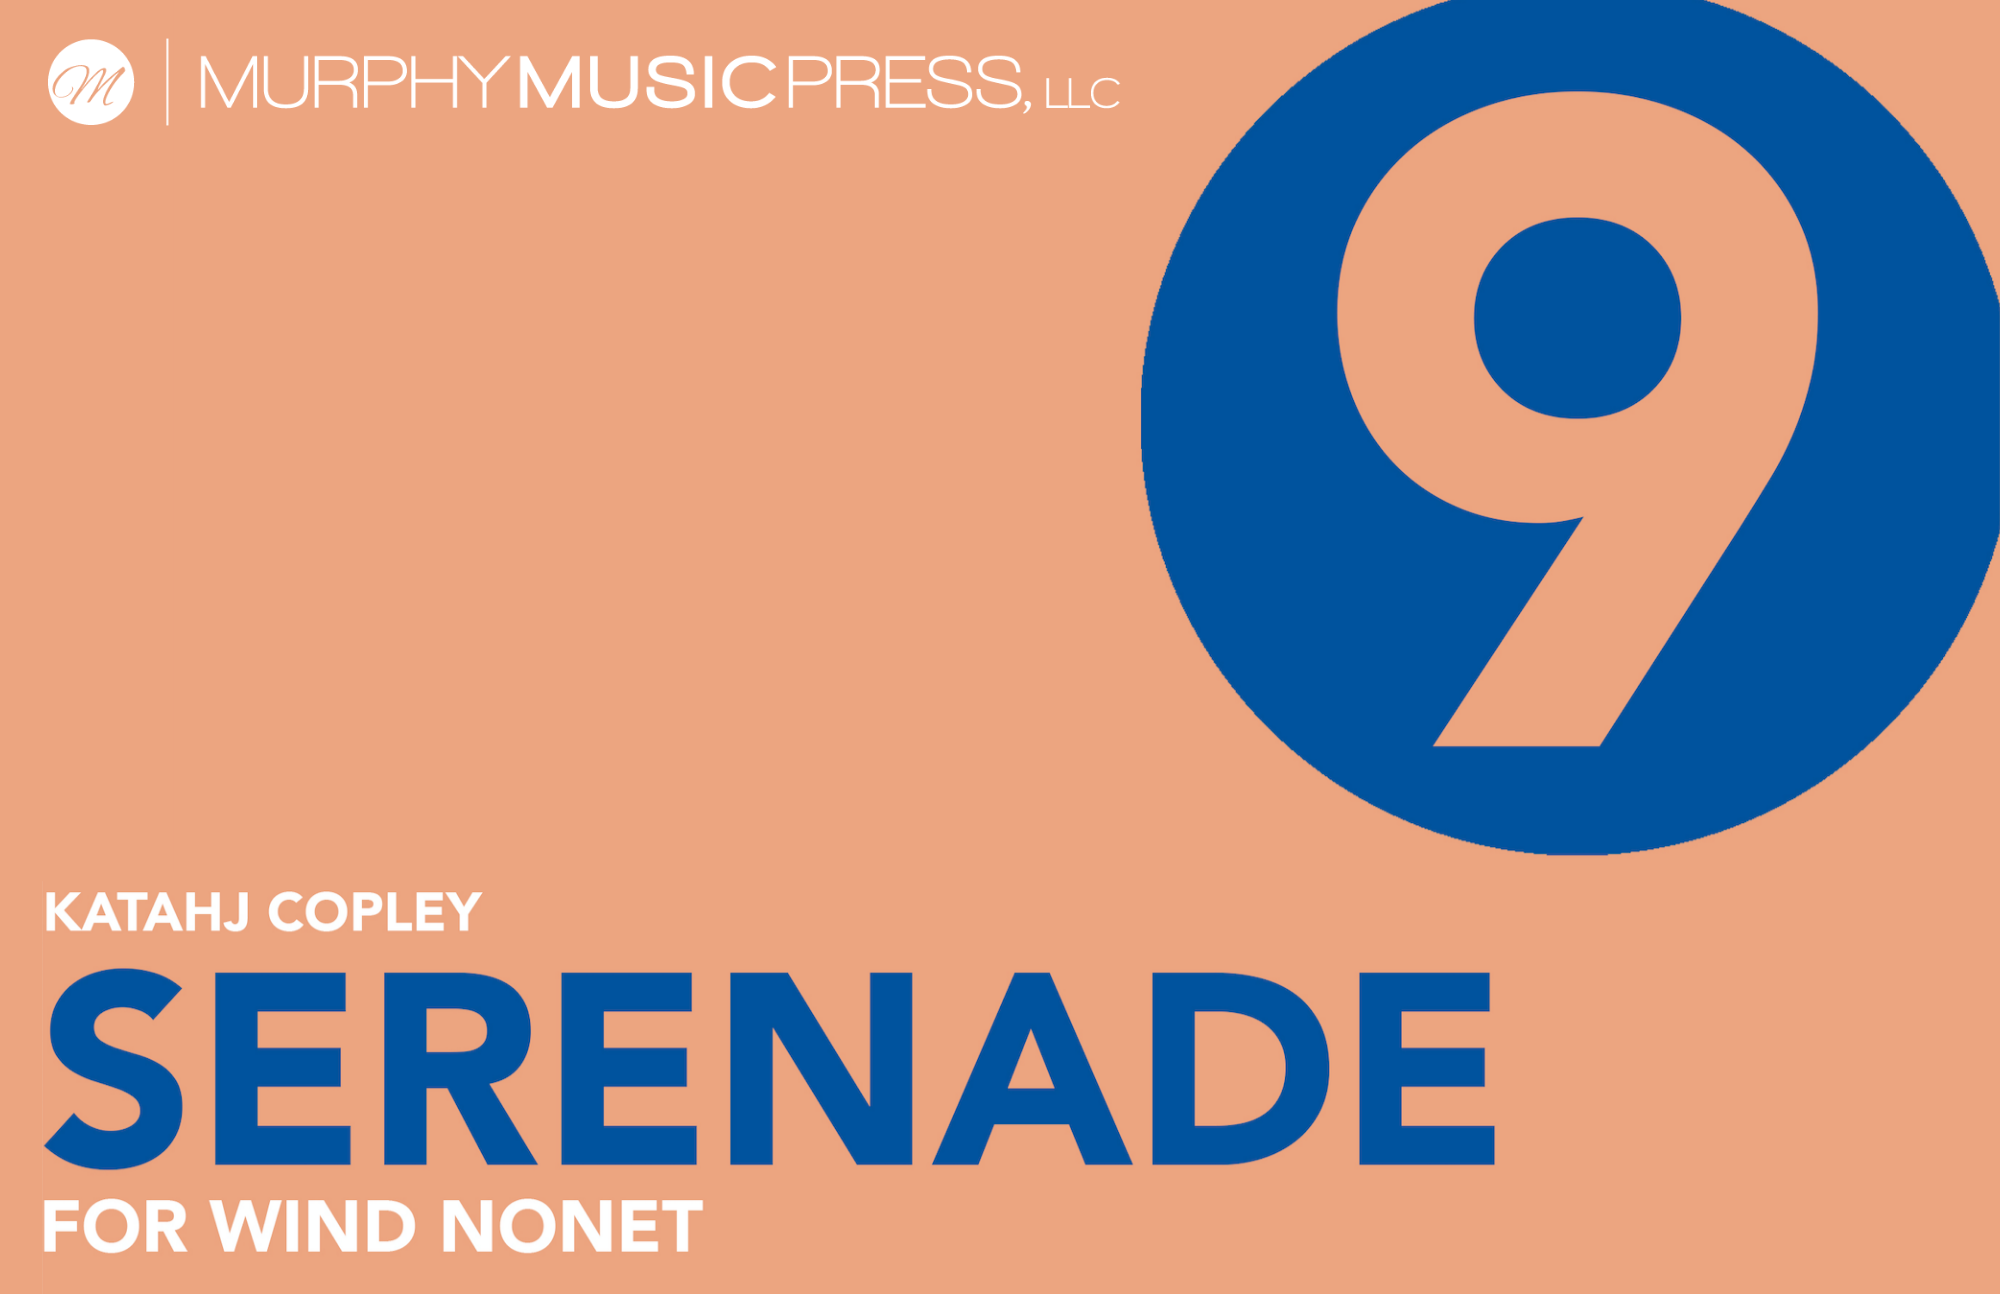 Serenade For Wind Nonet  by Katahj Copley